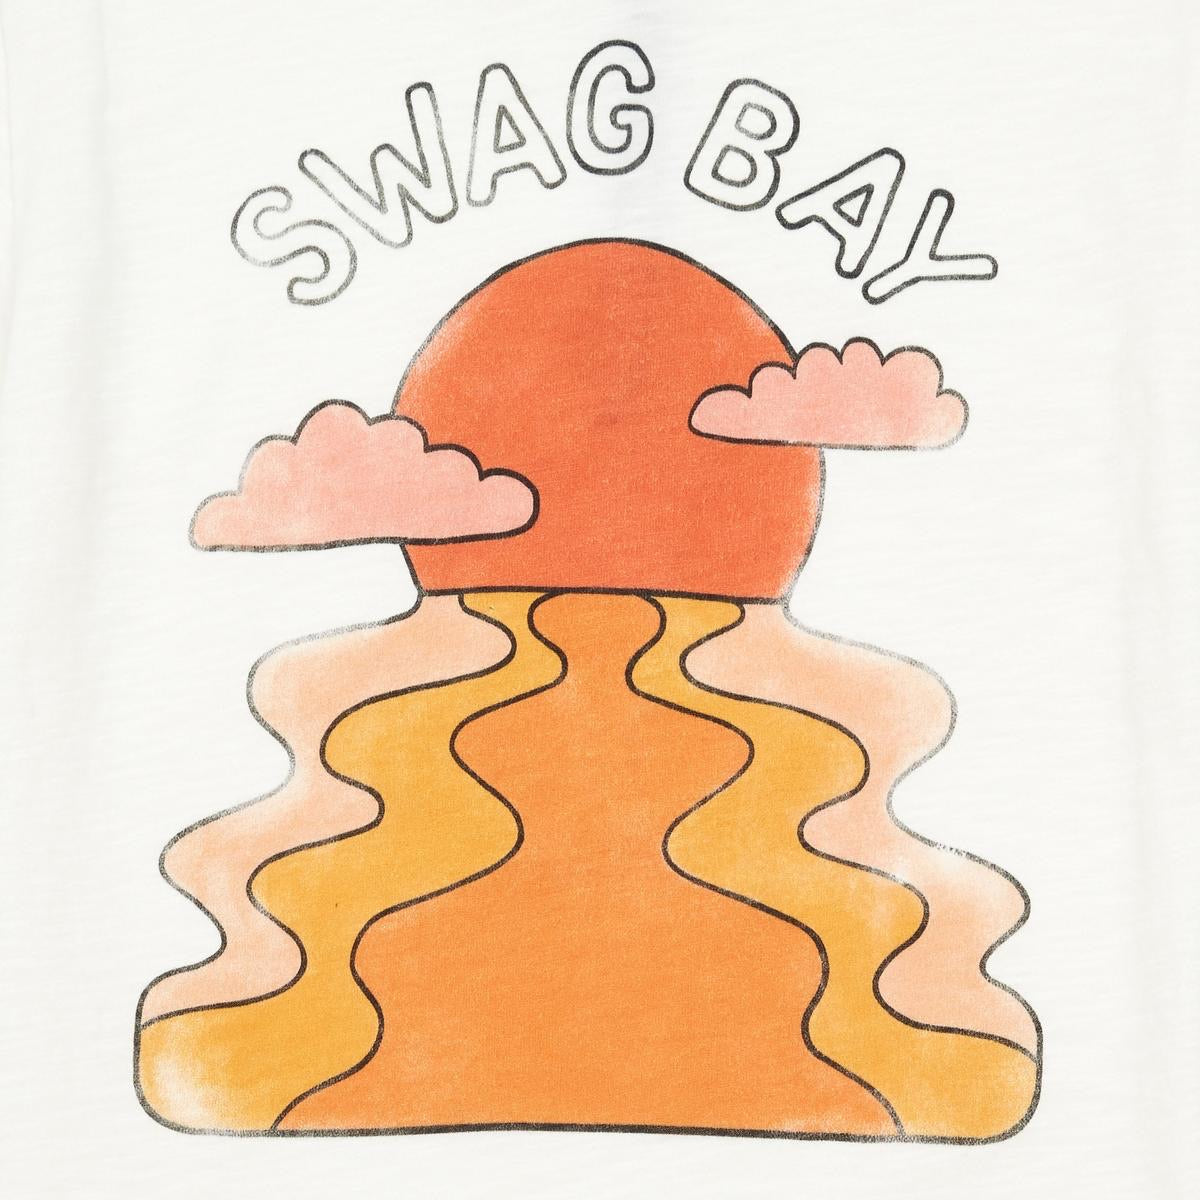 Swag Bay Tee White